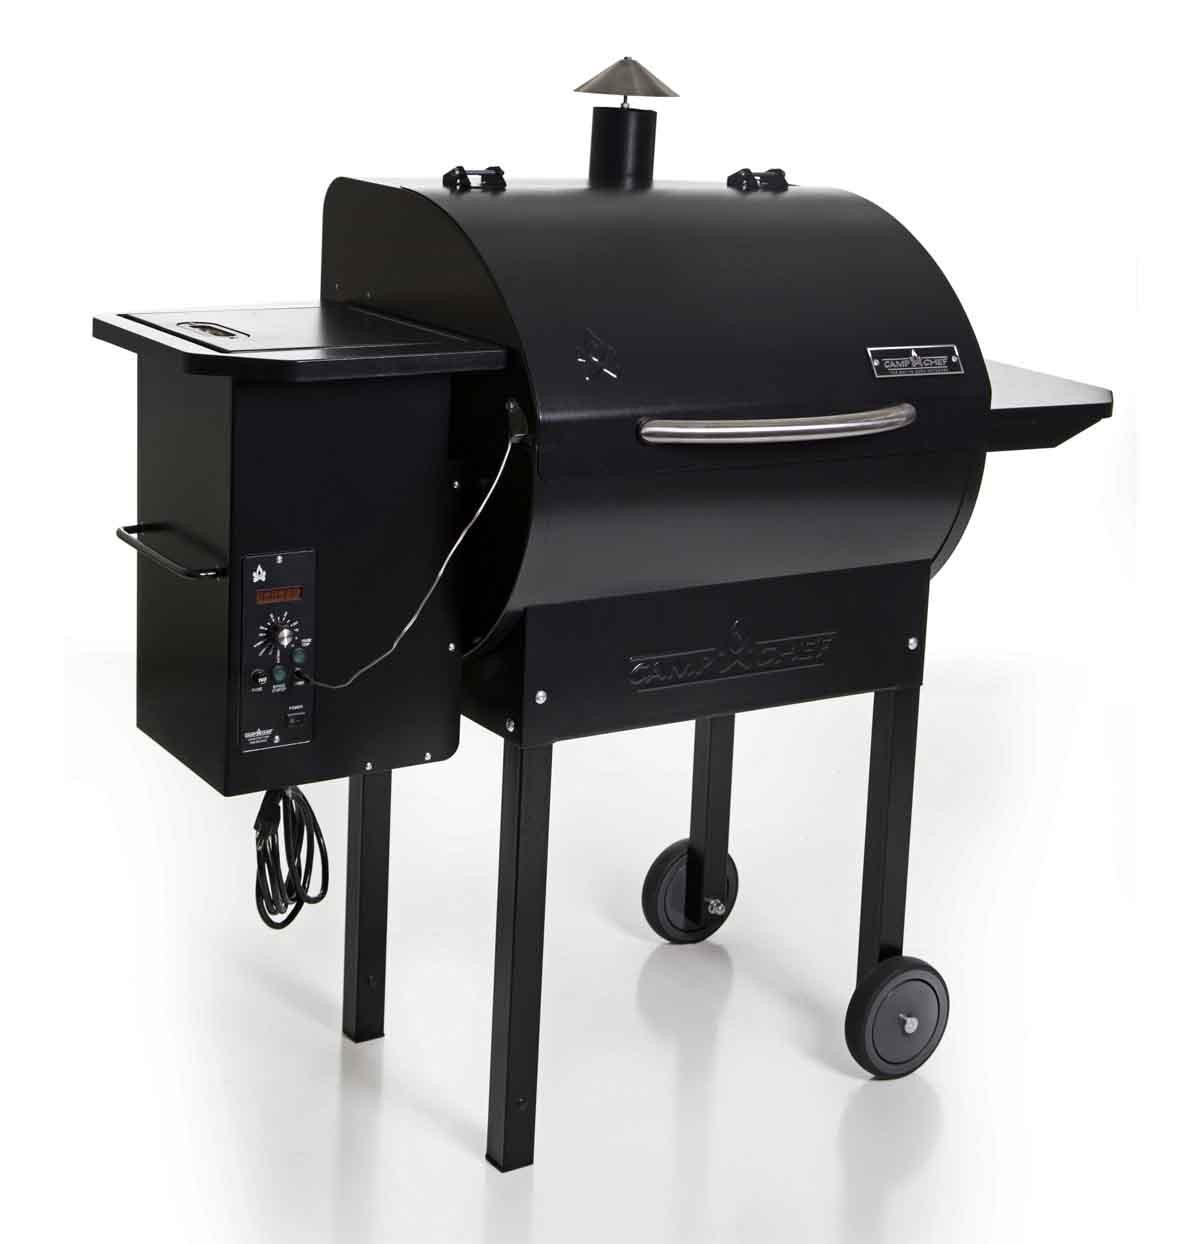 Camp chef pg24 wood pellet grill and smoker - Pellet grills and smokers ...